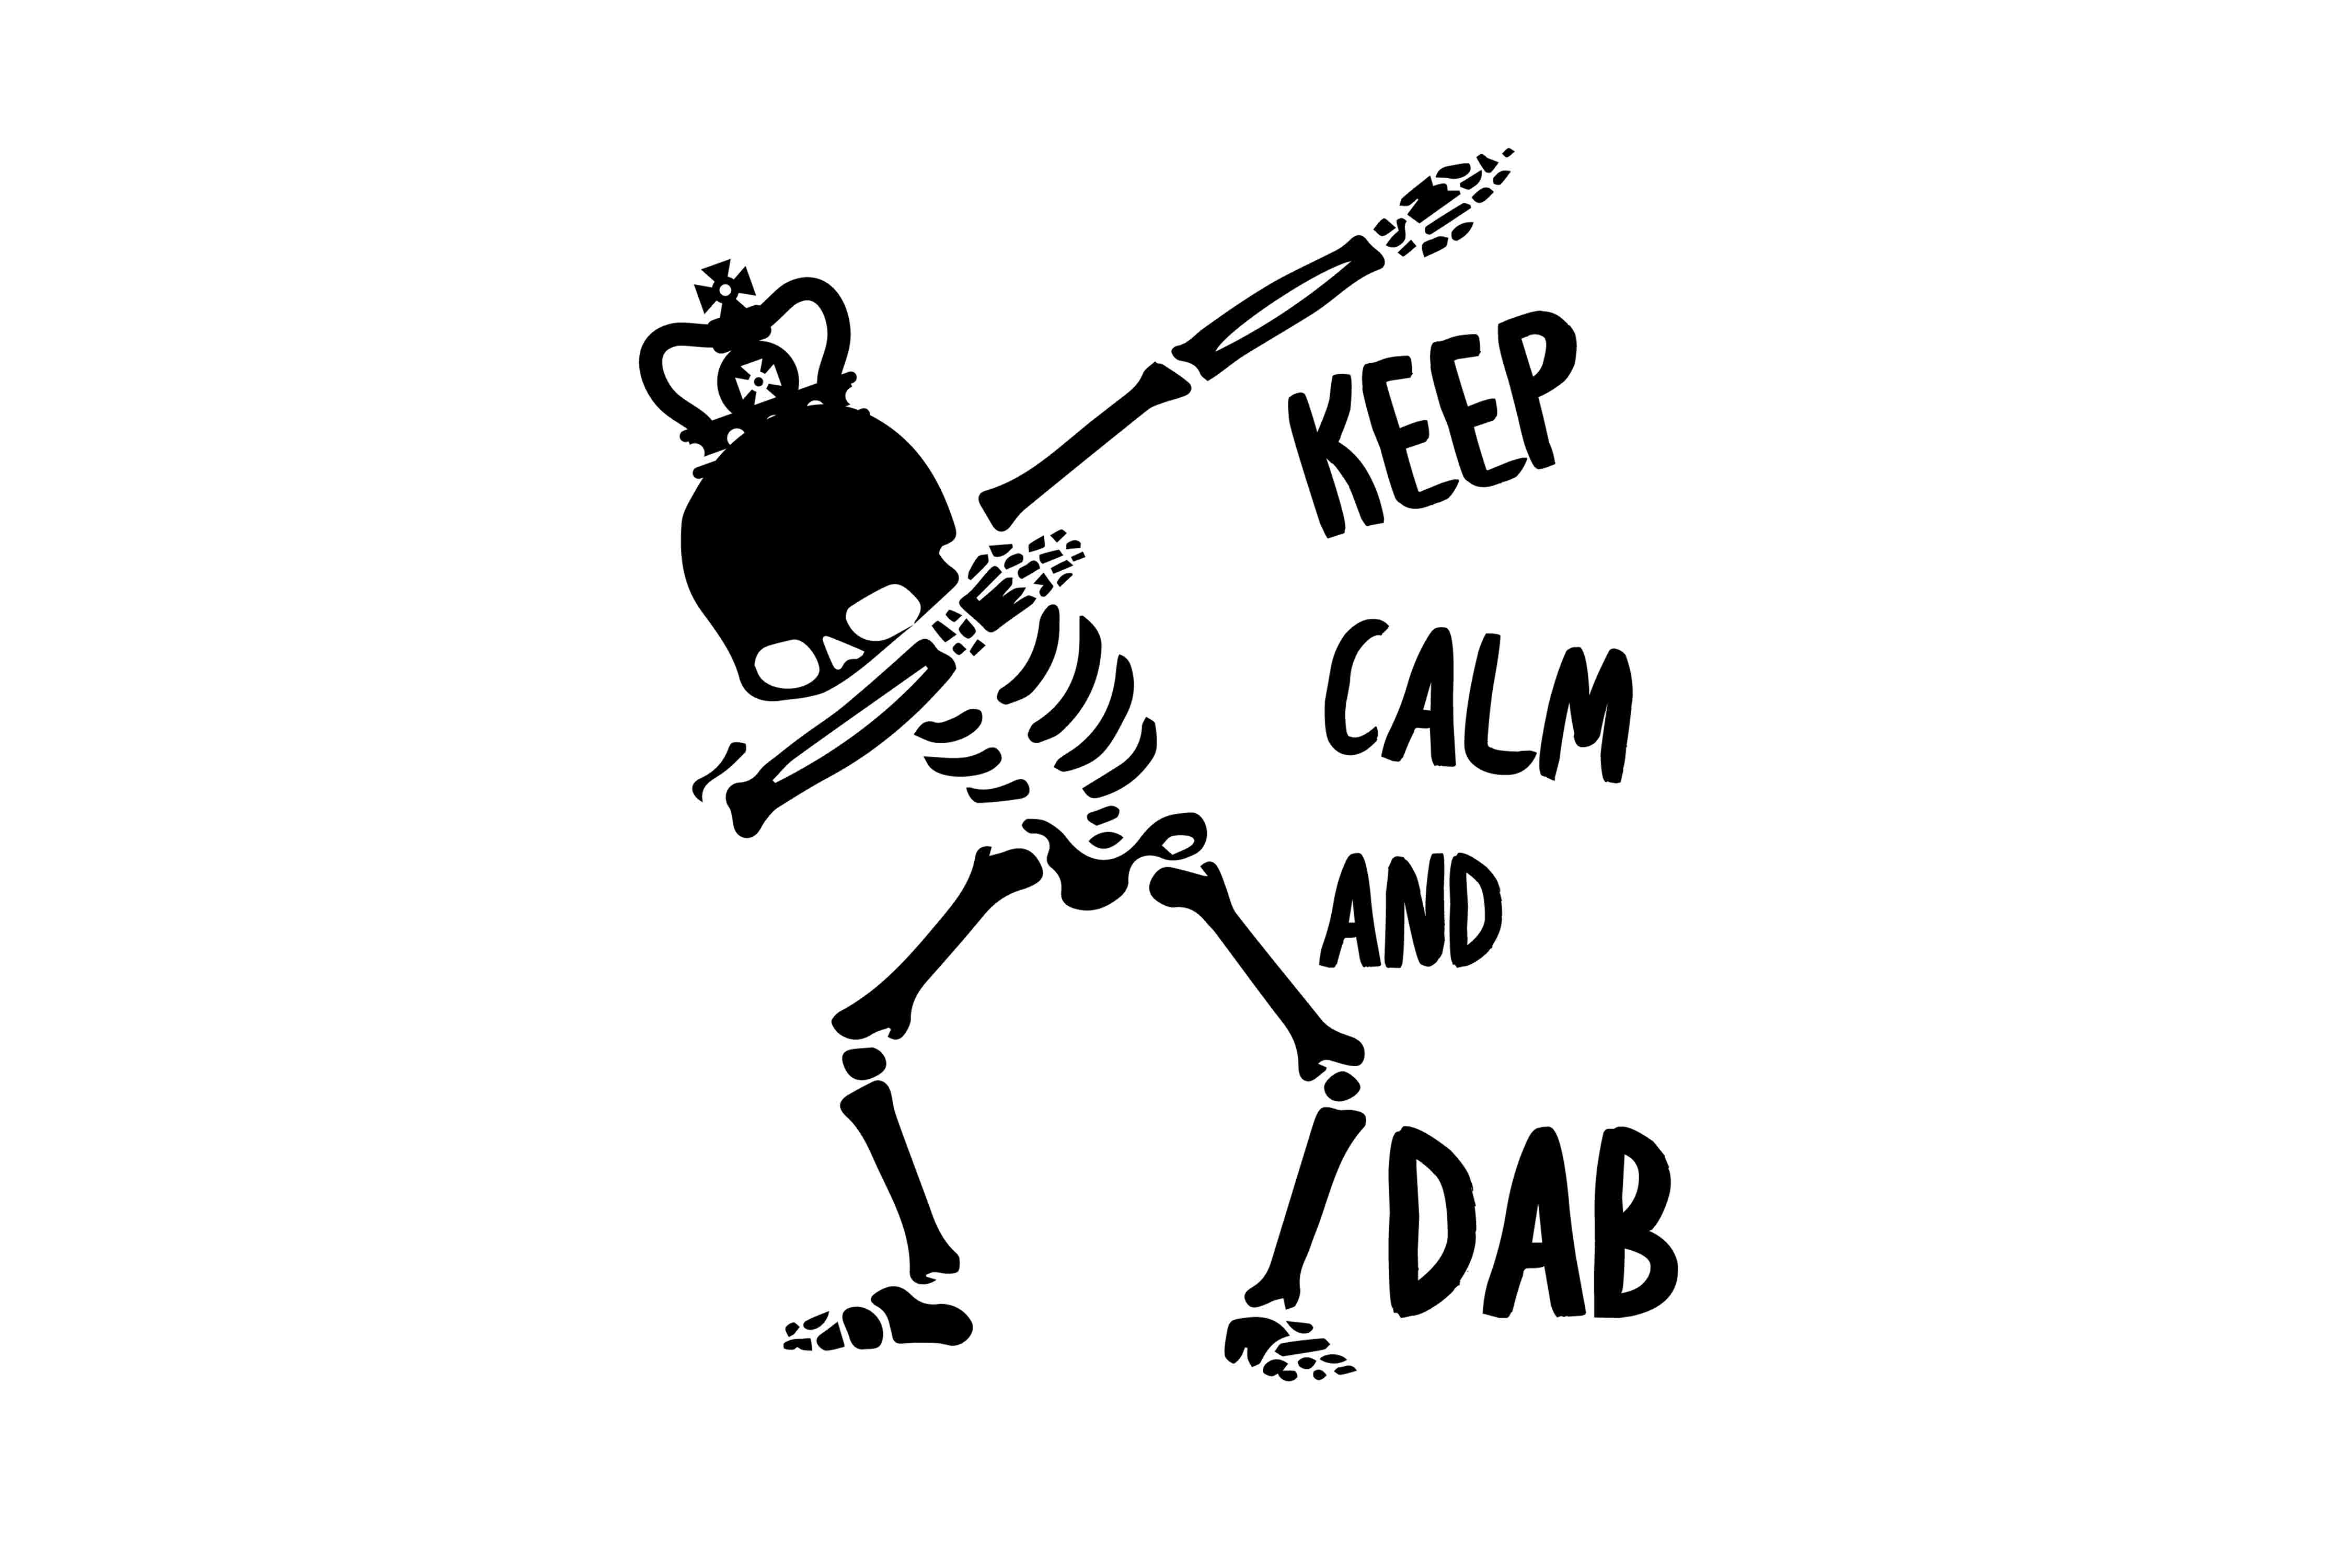 Download Free Keep Calm And Dab Svg Dxf Eps Graphic By Twelvepapers Creative for Cricut Explore, Silhouette and other cutting machines.